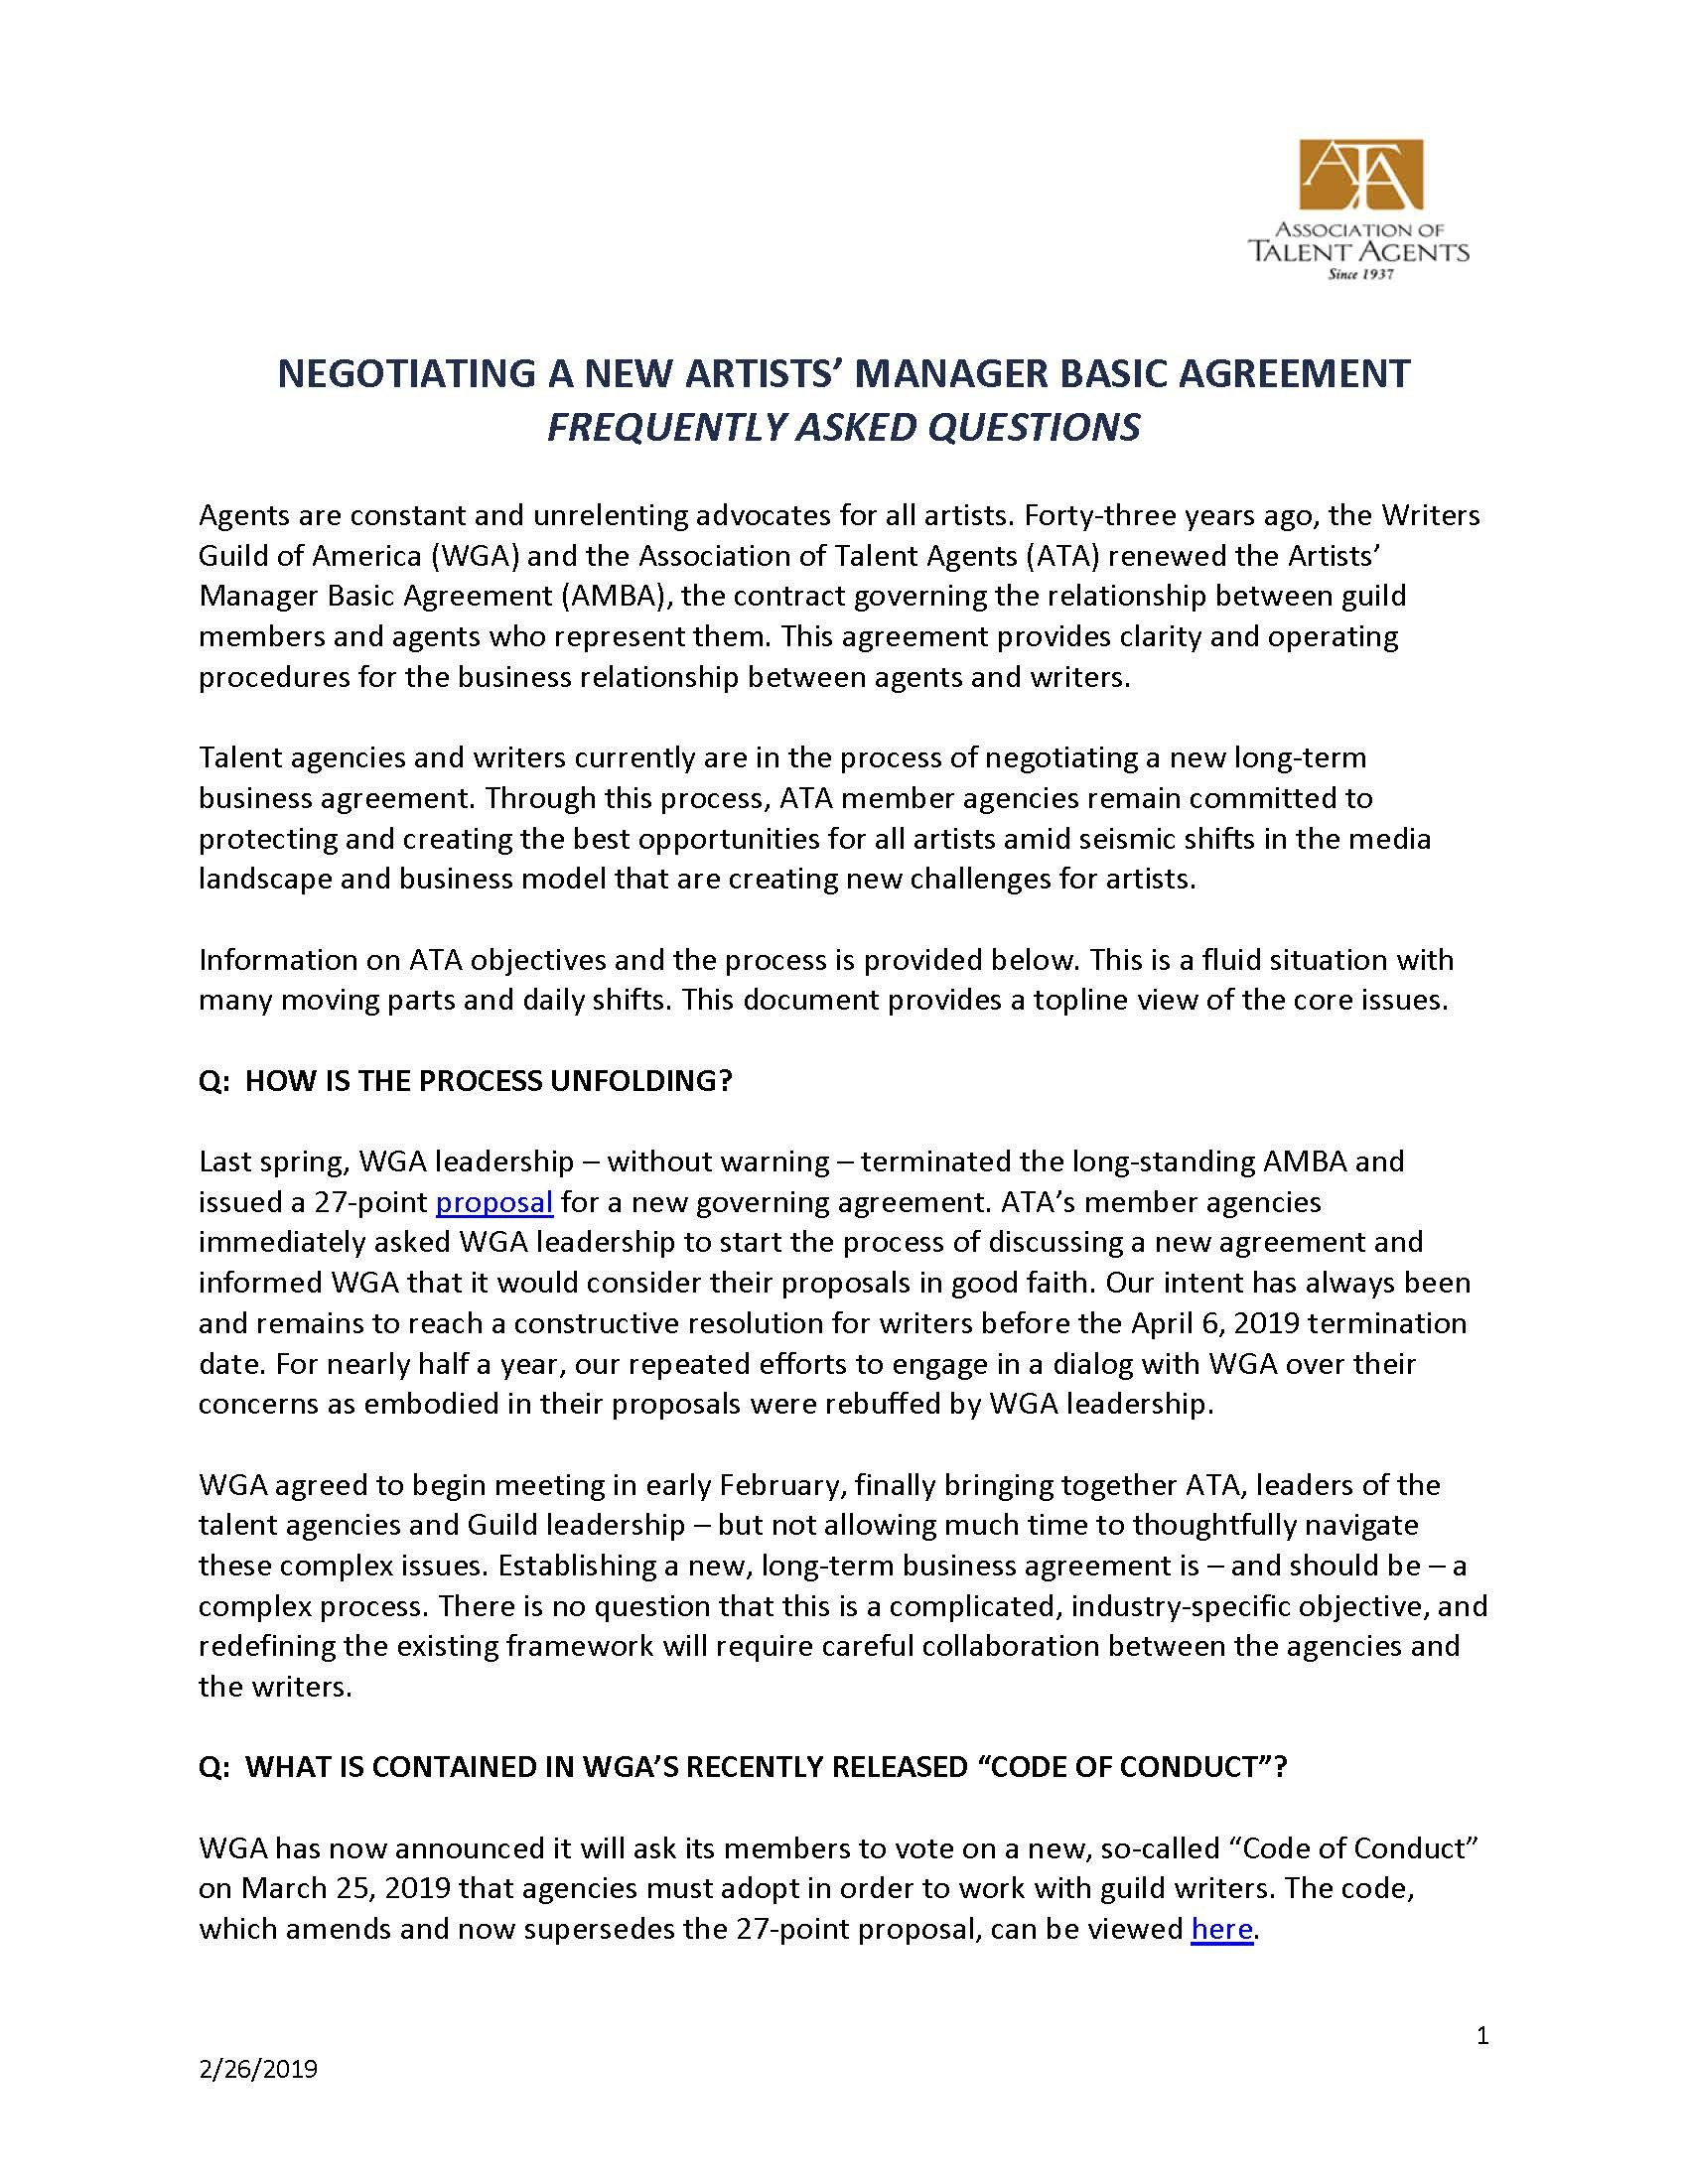 Association Of Talent Agents   Artists' Manager Basic Agreement With Talent Agency Agreement Template